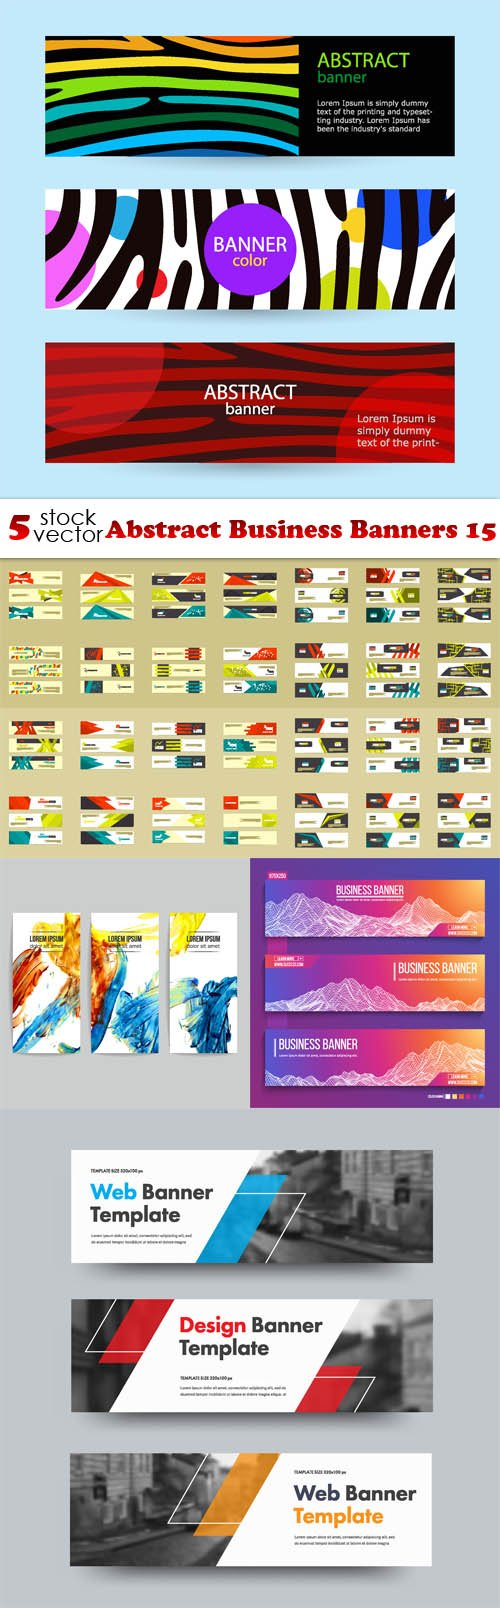 Vectors - Abstract Business Banners 15